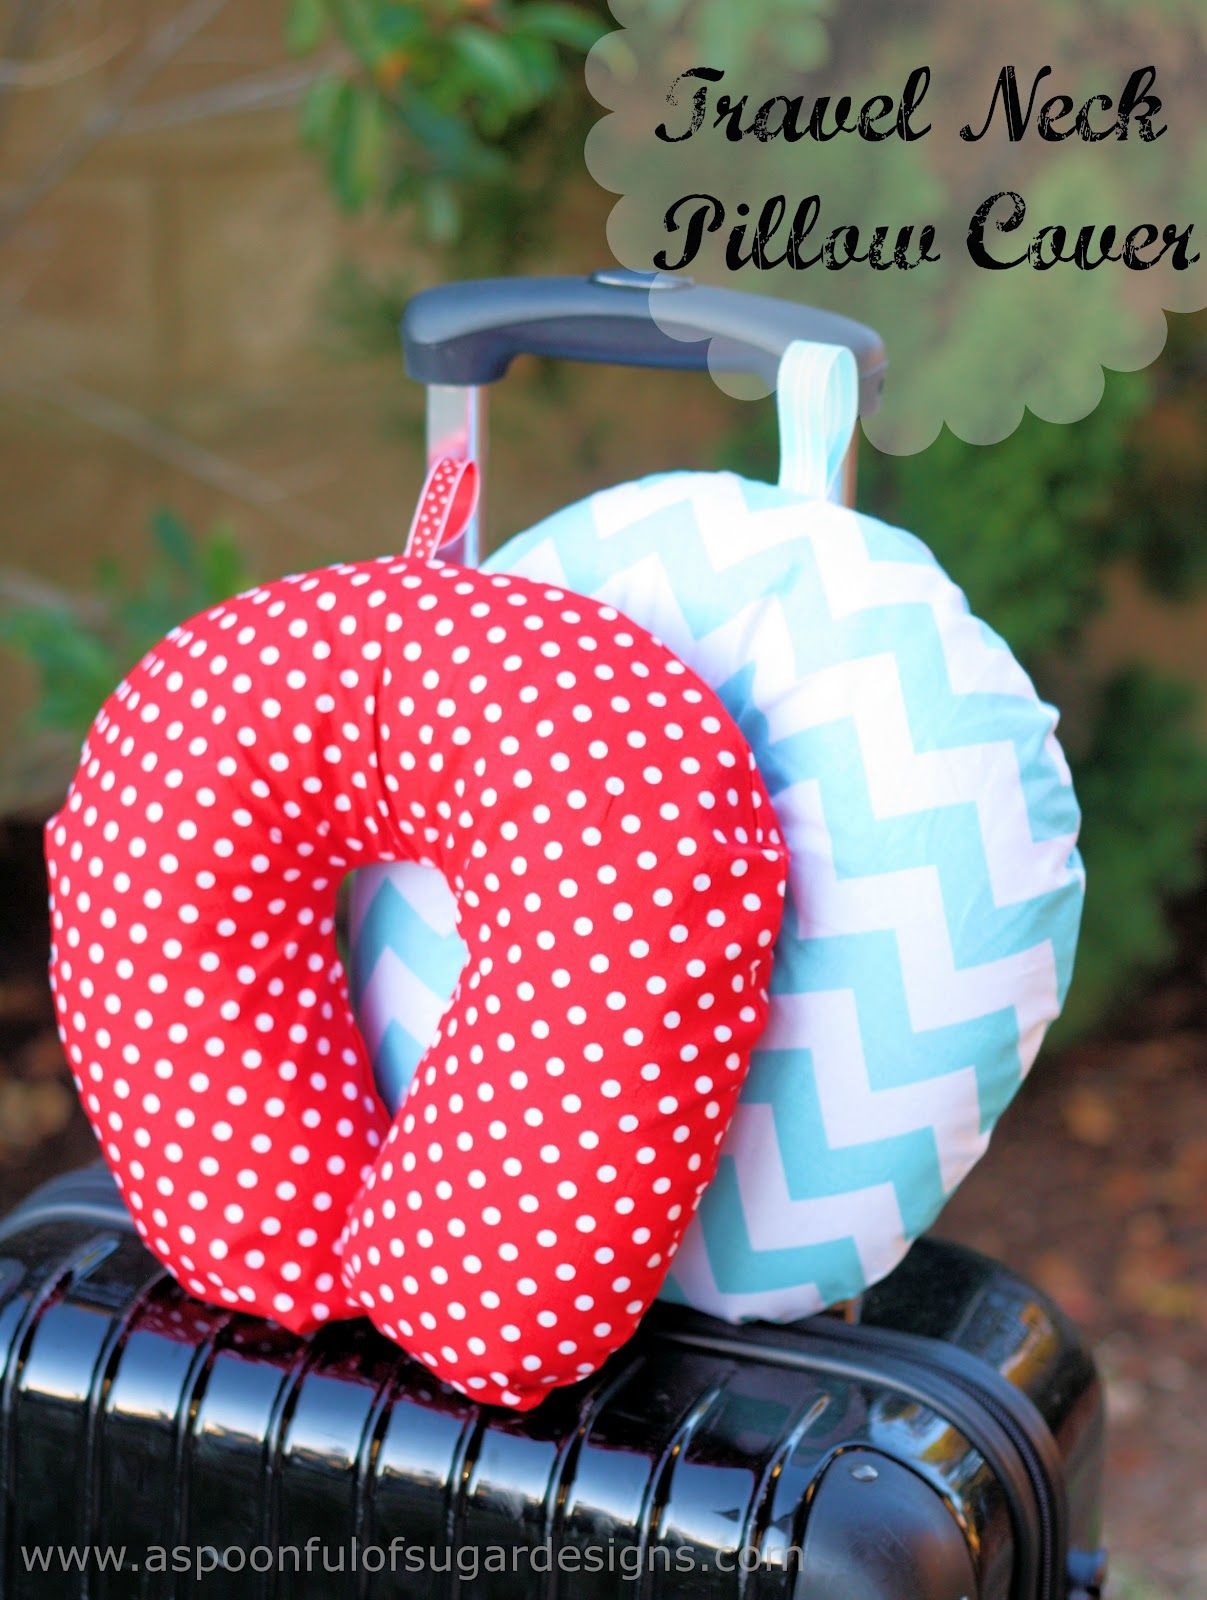 travel neck pillow cover a spoonful